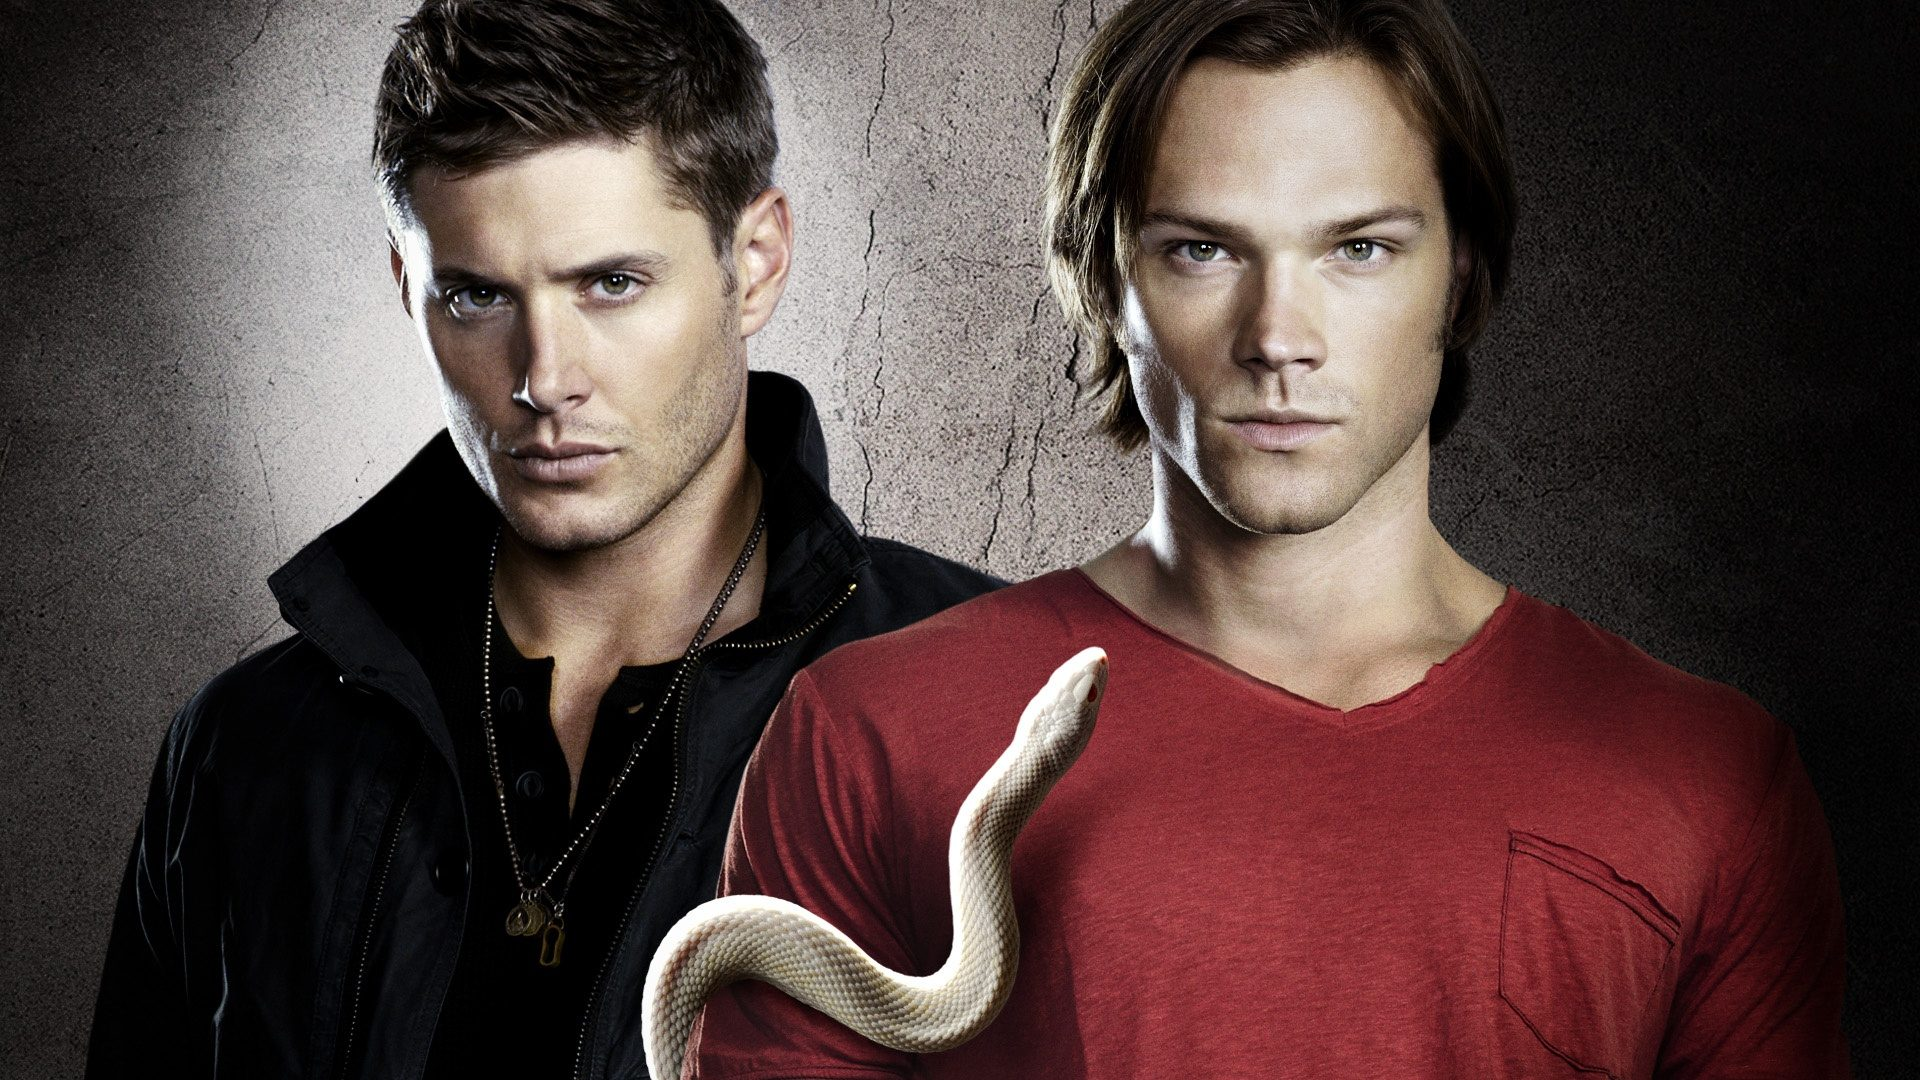 Supernatural-TV-series-1920x1080-Wallpaper